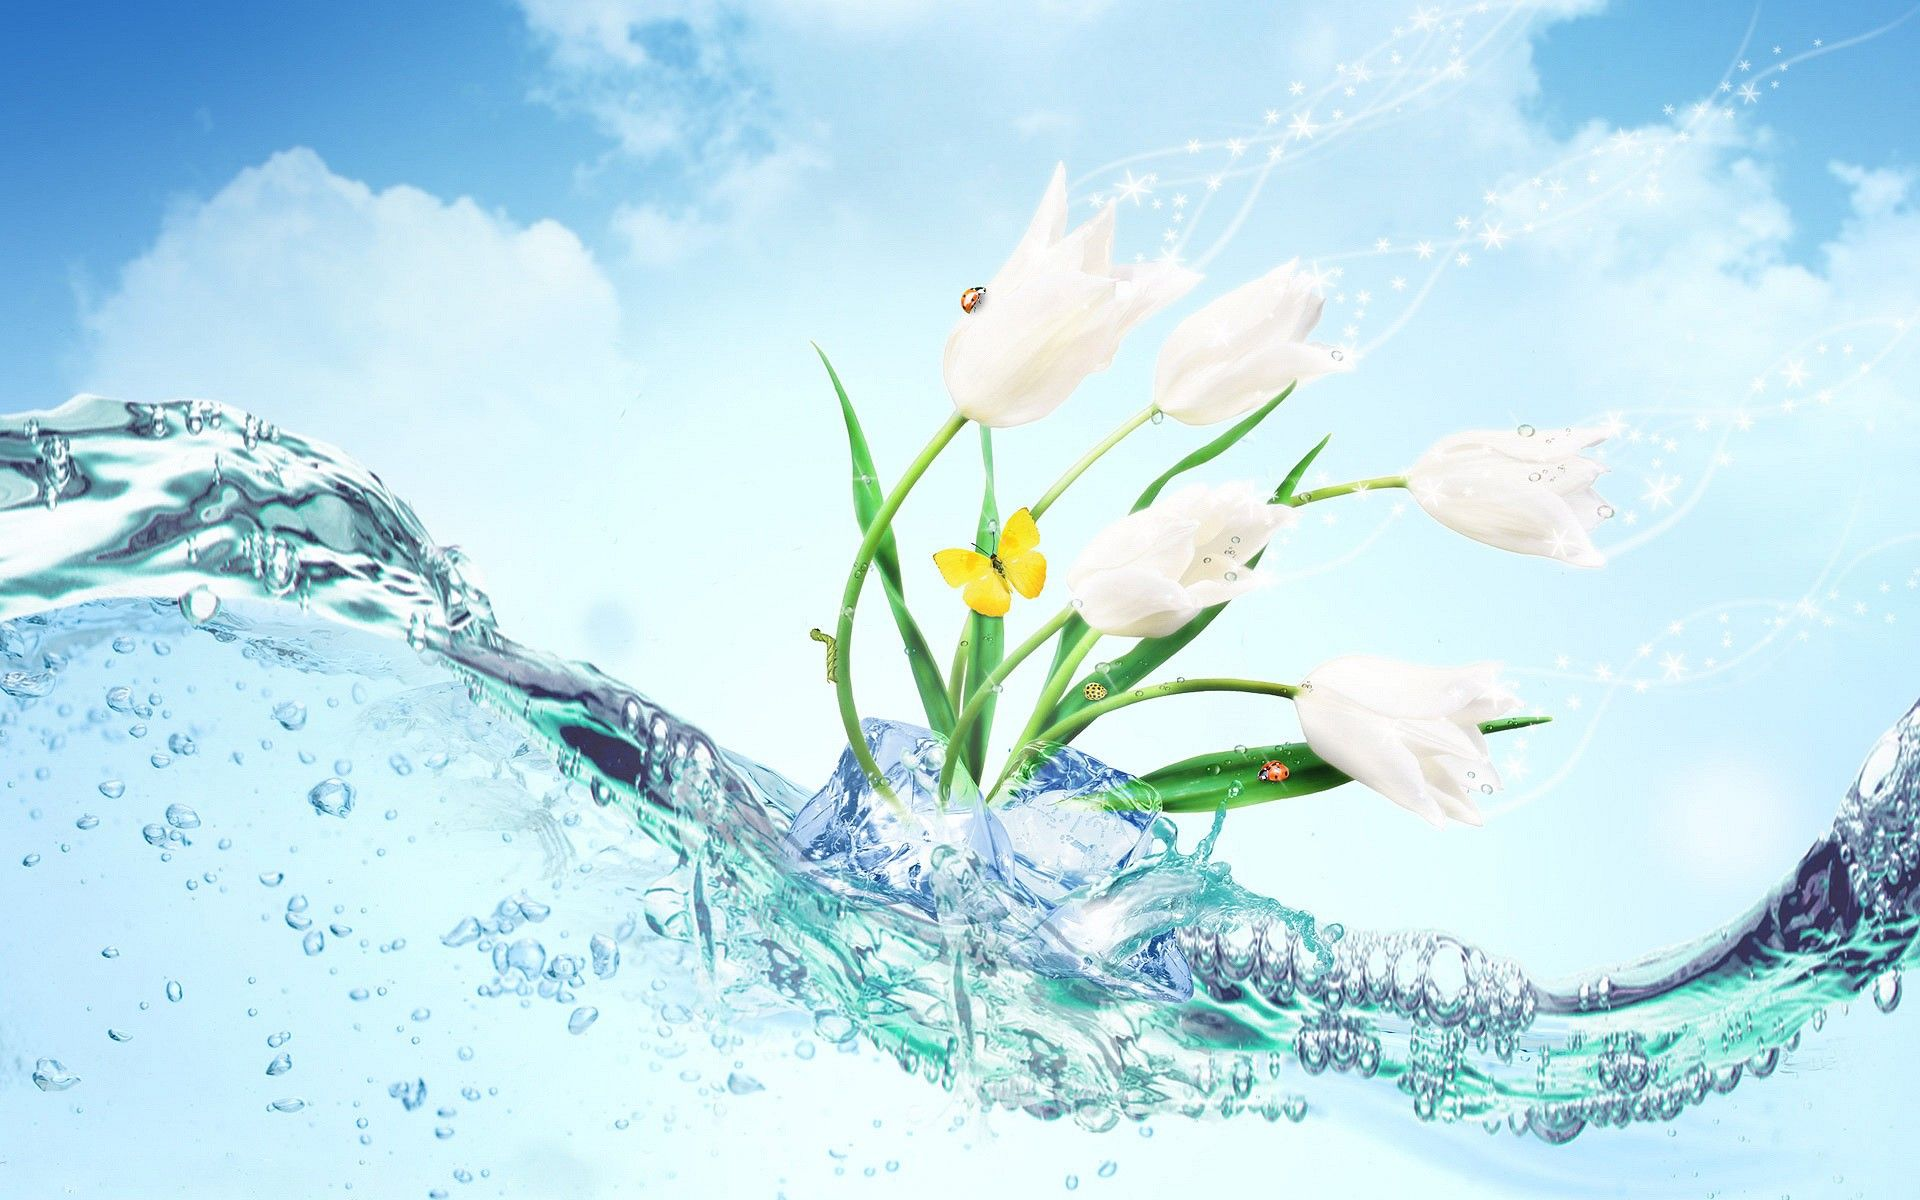 bright hd wallpapers 1080p widescreen - photo #48